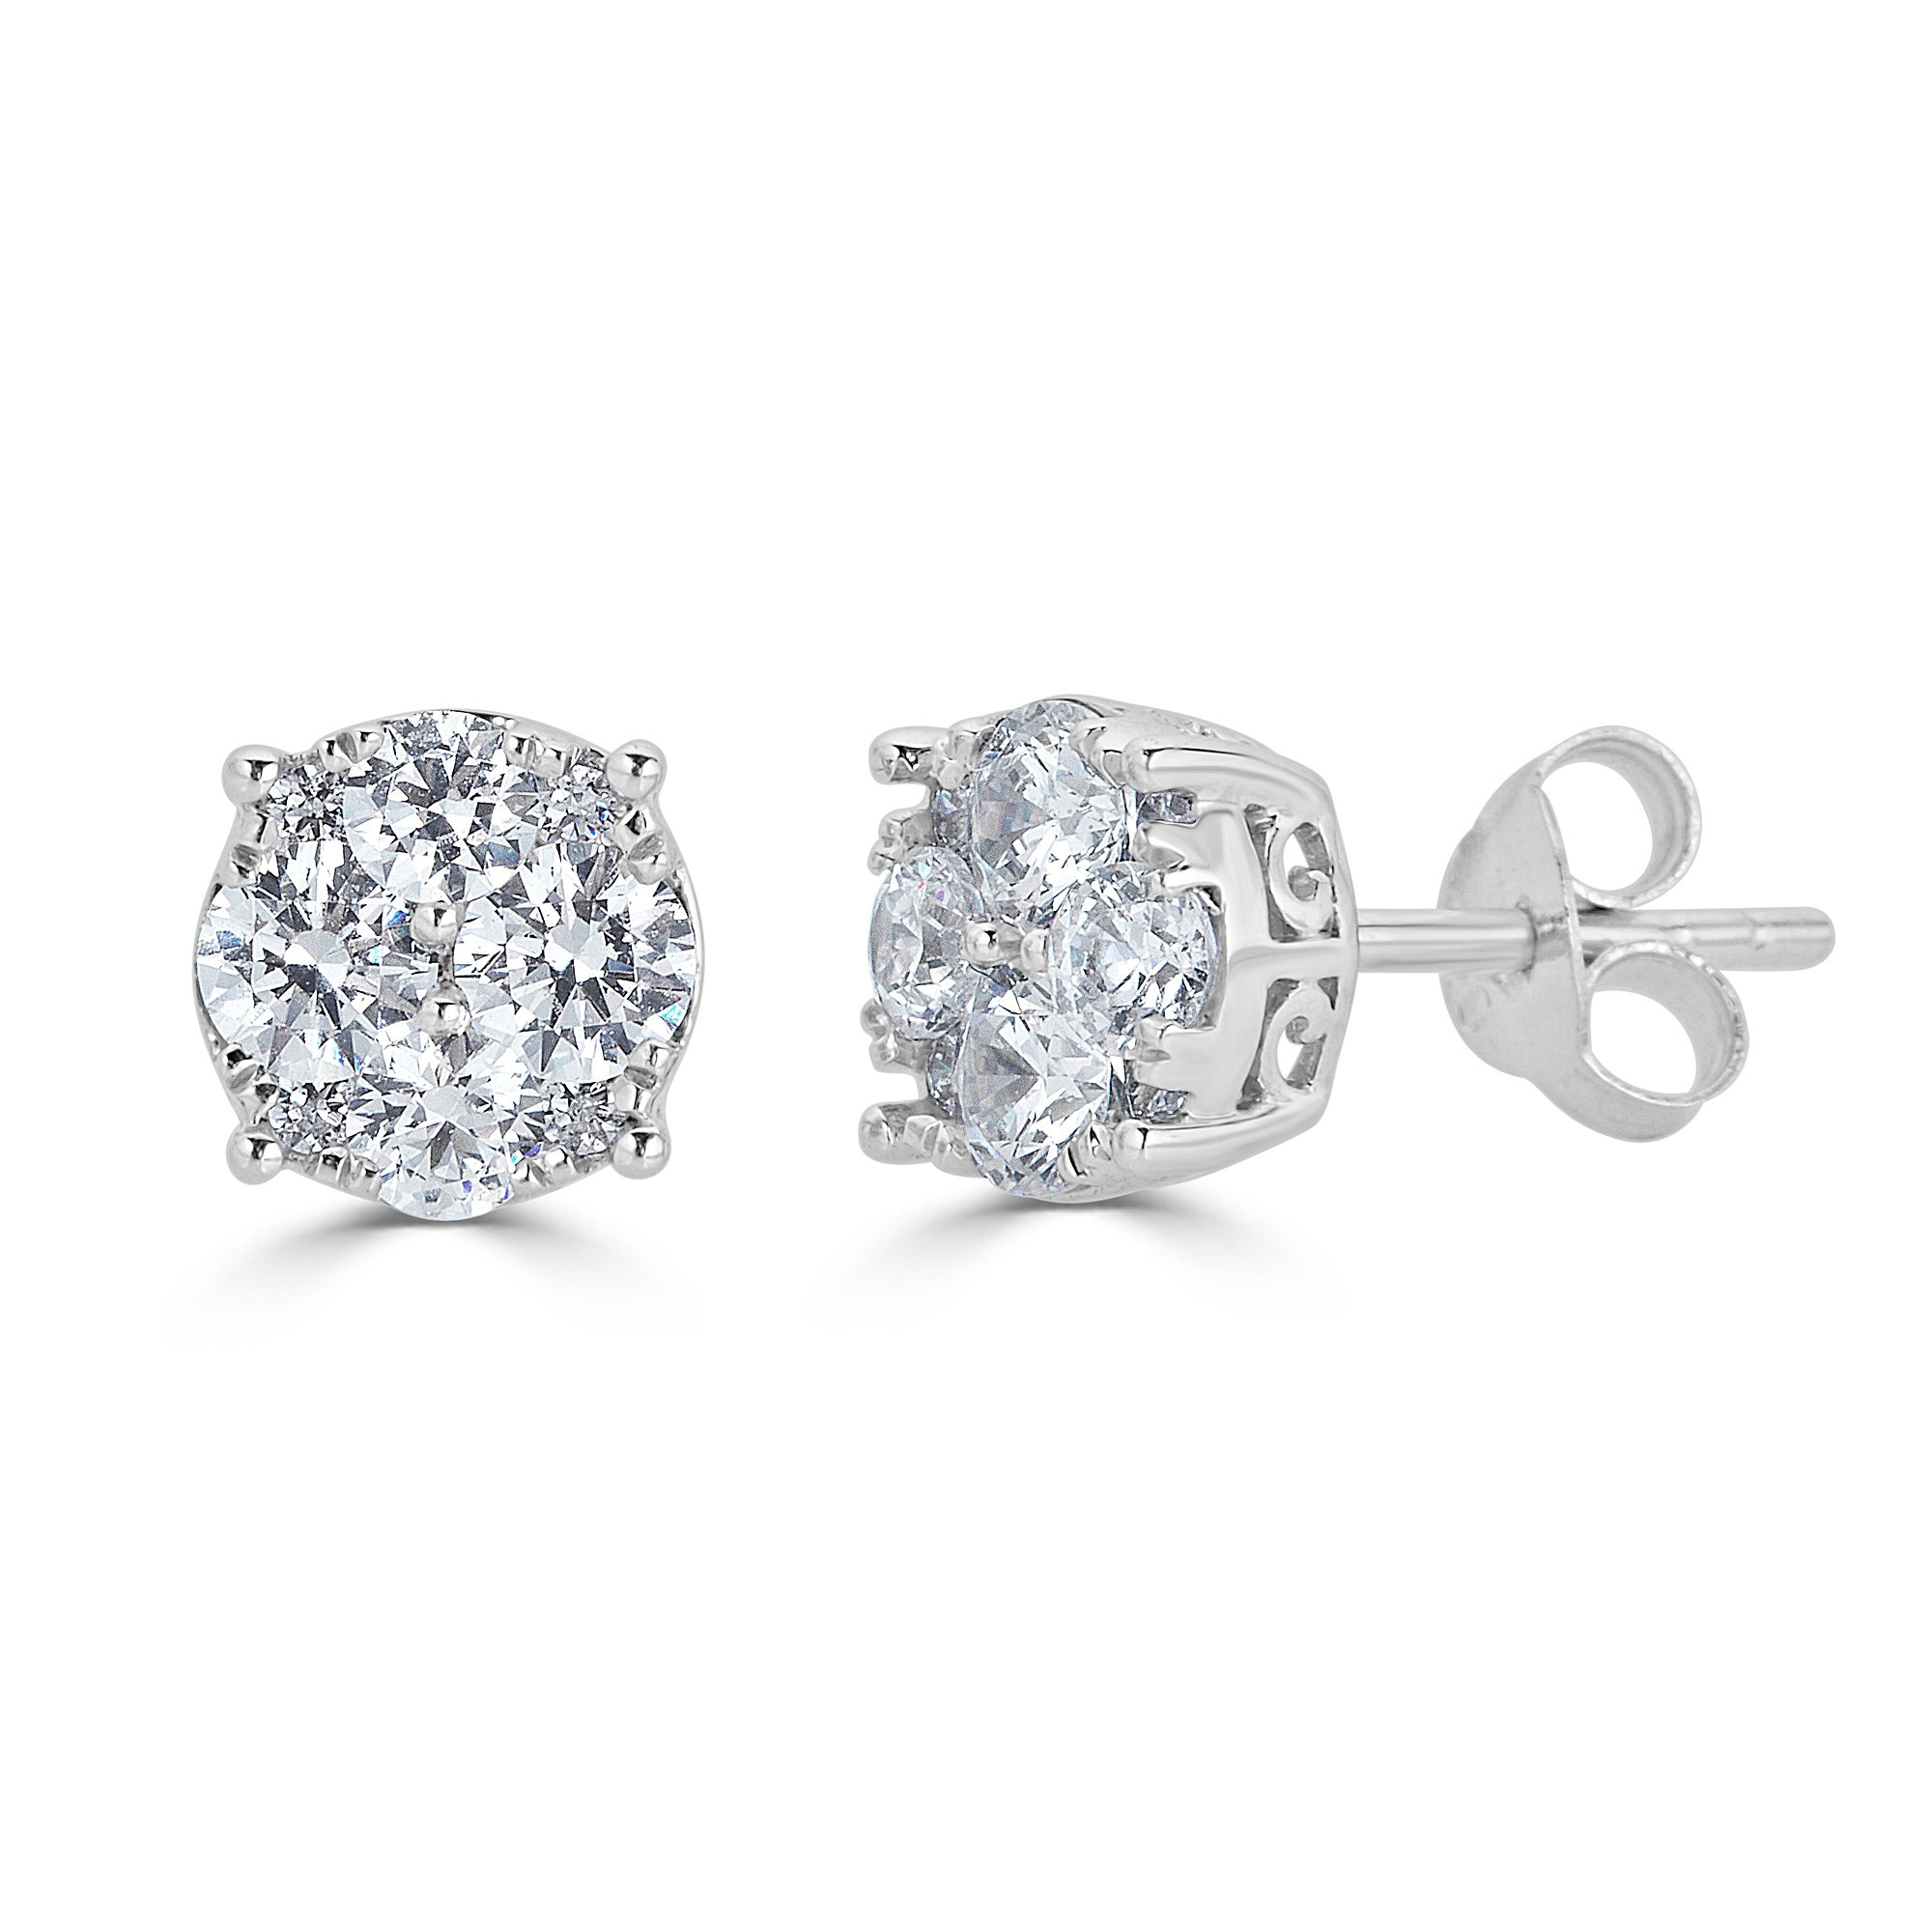 1.00Ct Natural Diamond Stud Earrings Set in Sterling Silver